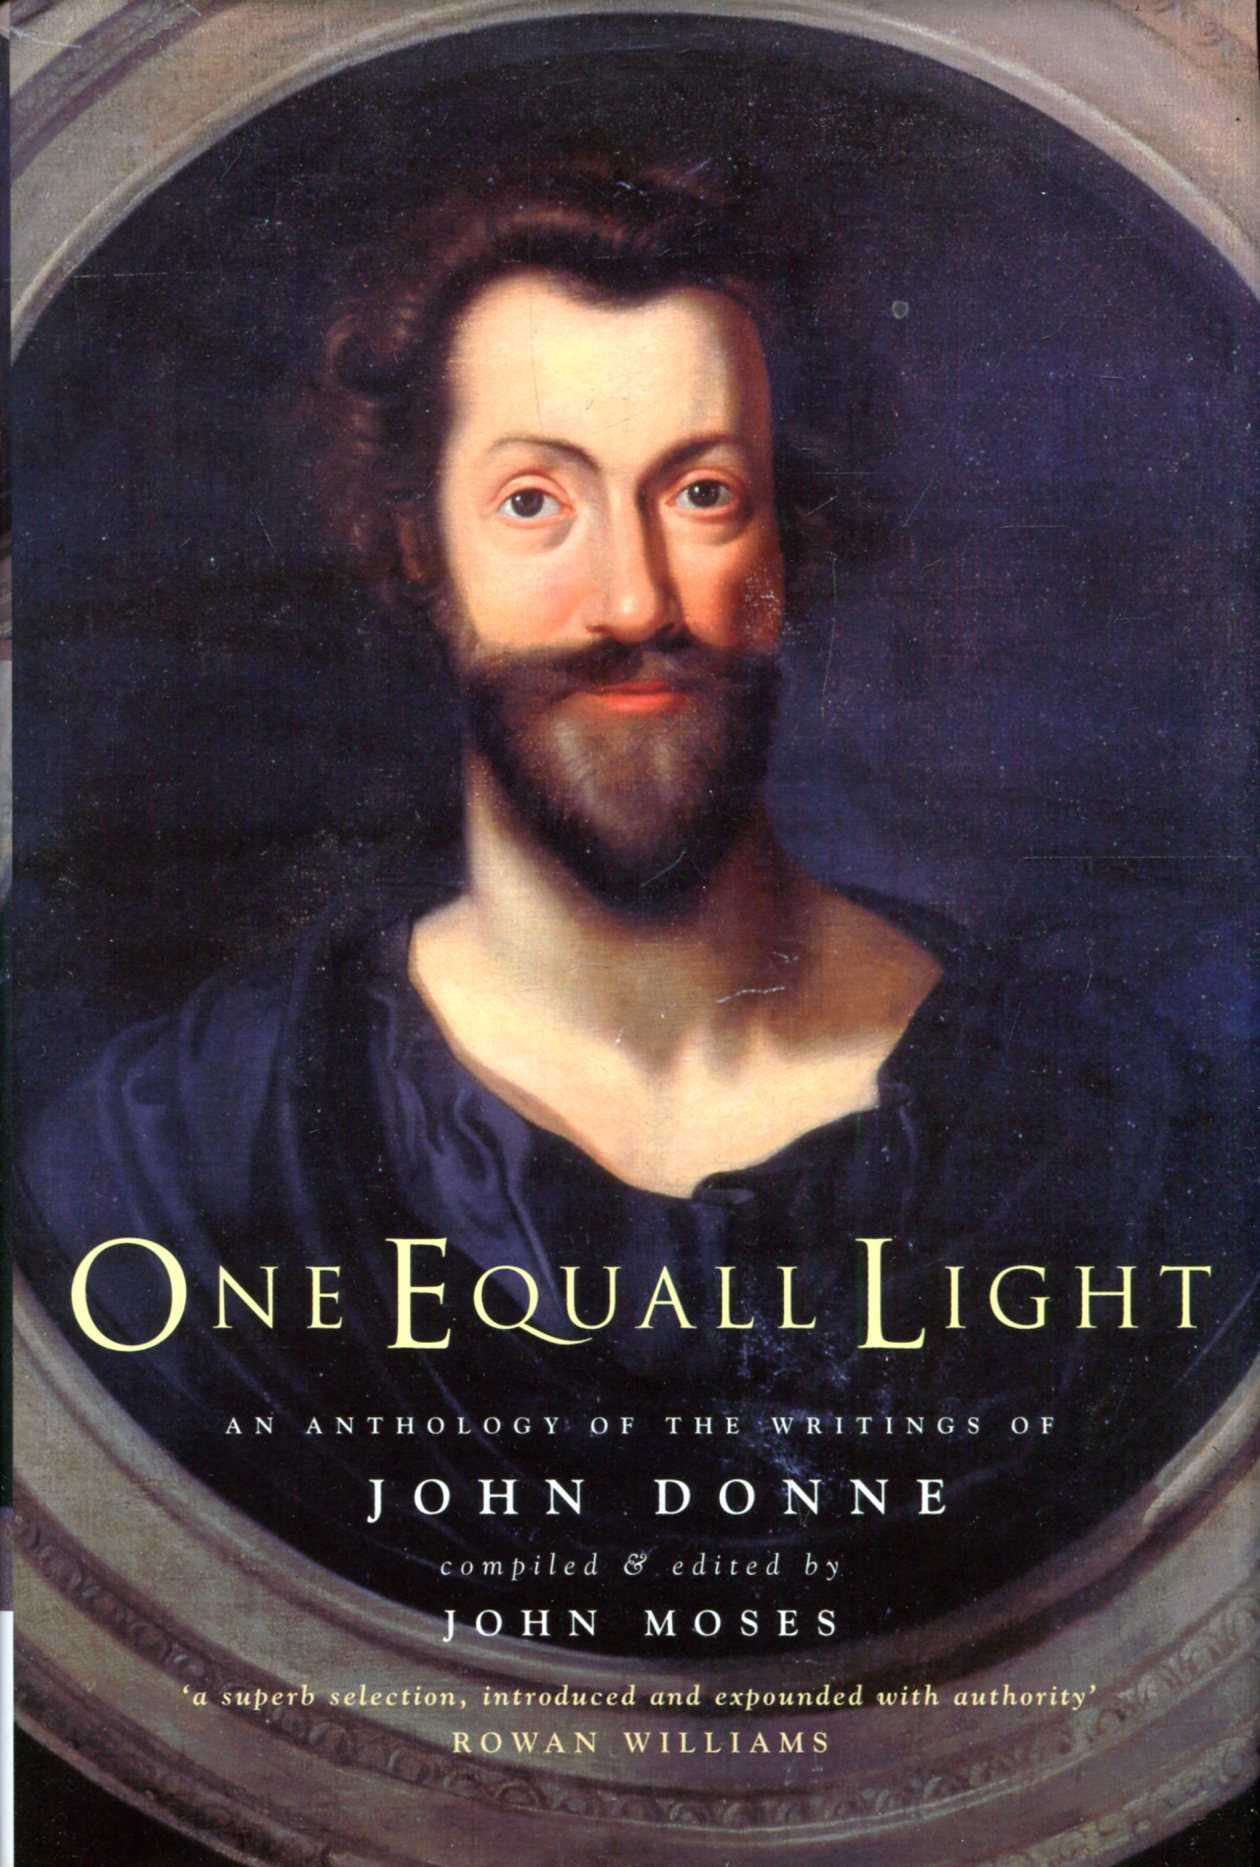 Image for One Equall Light : An Anthology of the Writings of John Donne